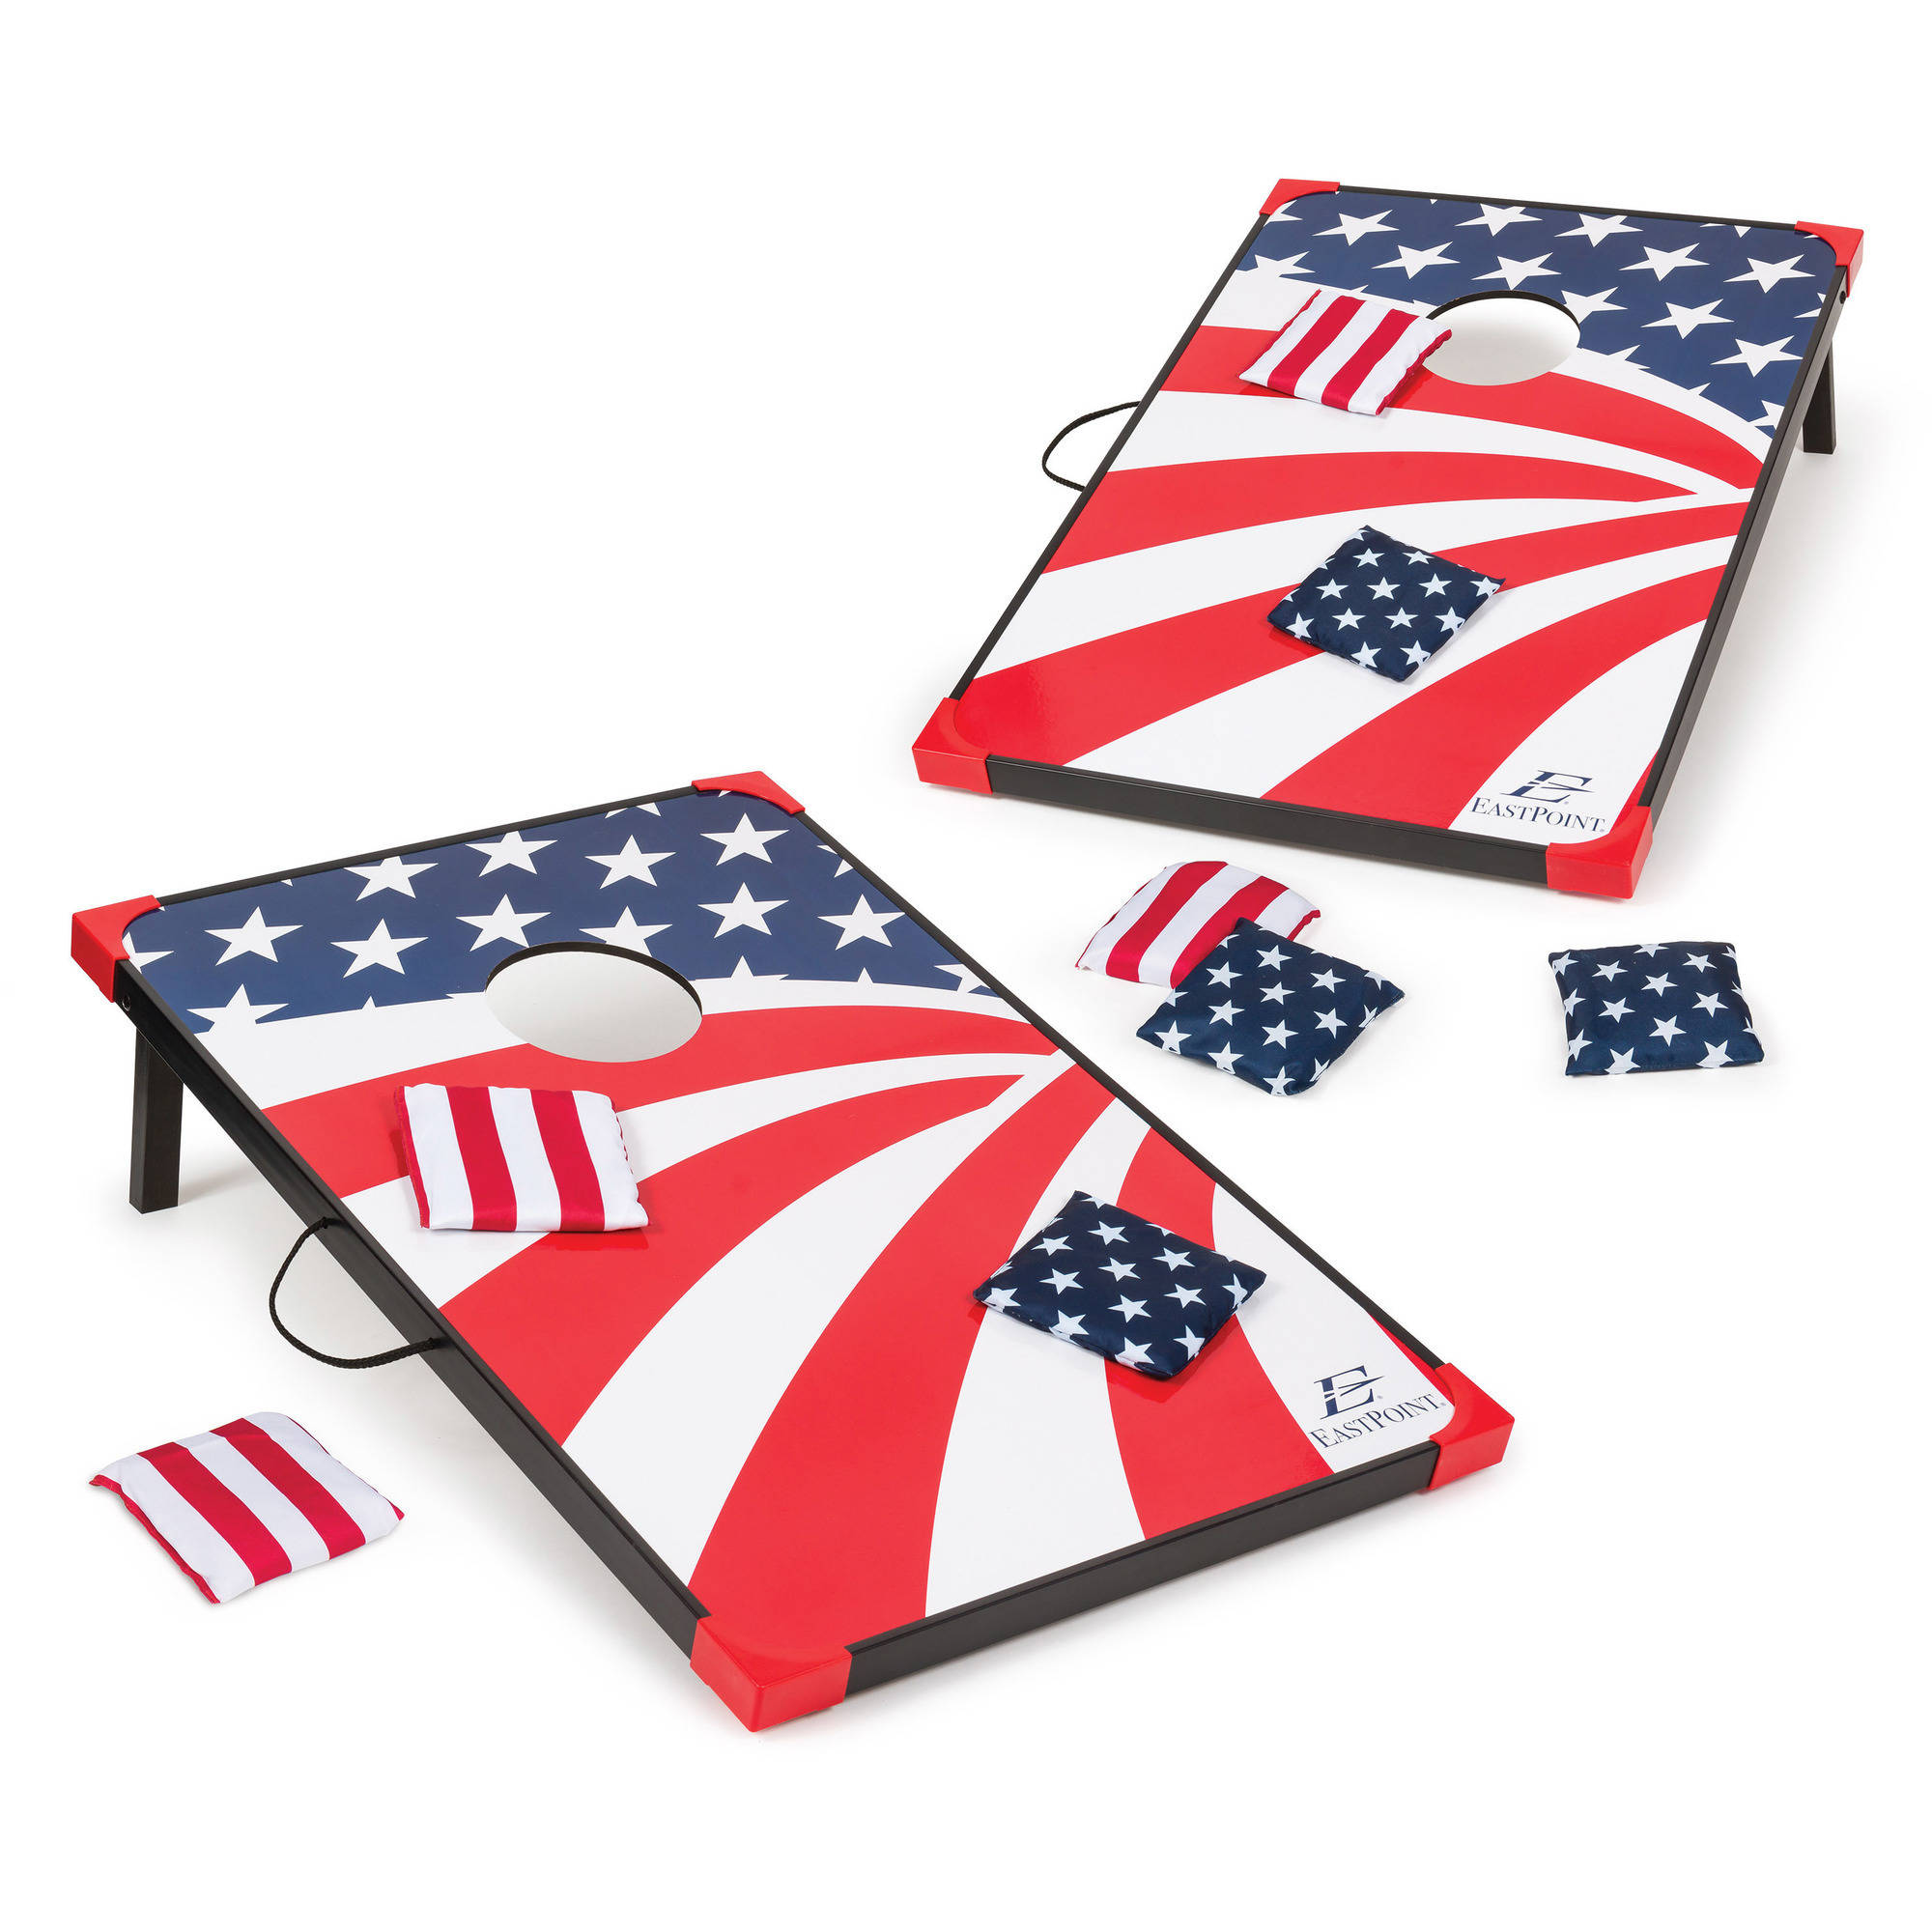 EastPoint Sports Stars & Stripes Cornhole Bean Bag Toss Game – 36in x 24in